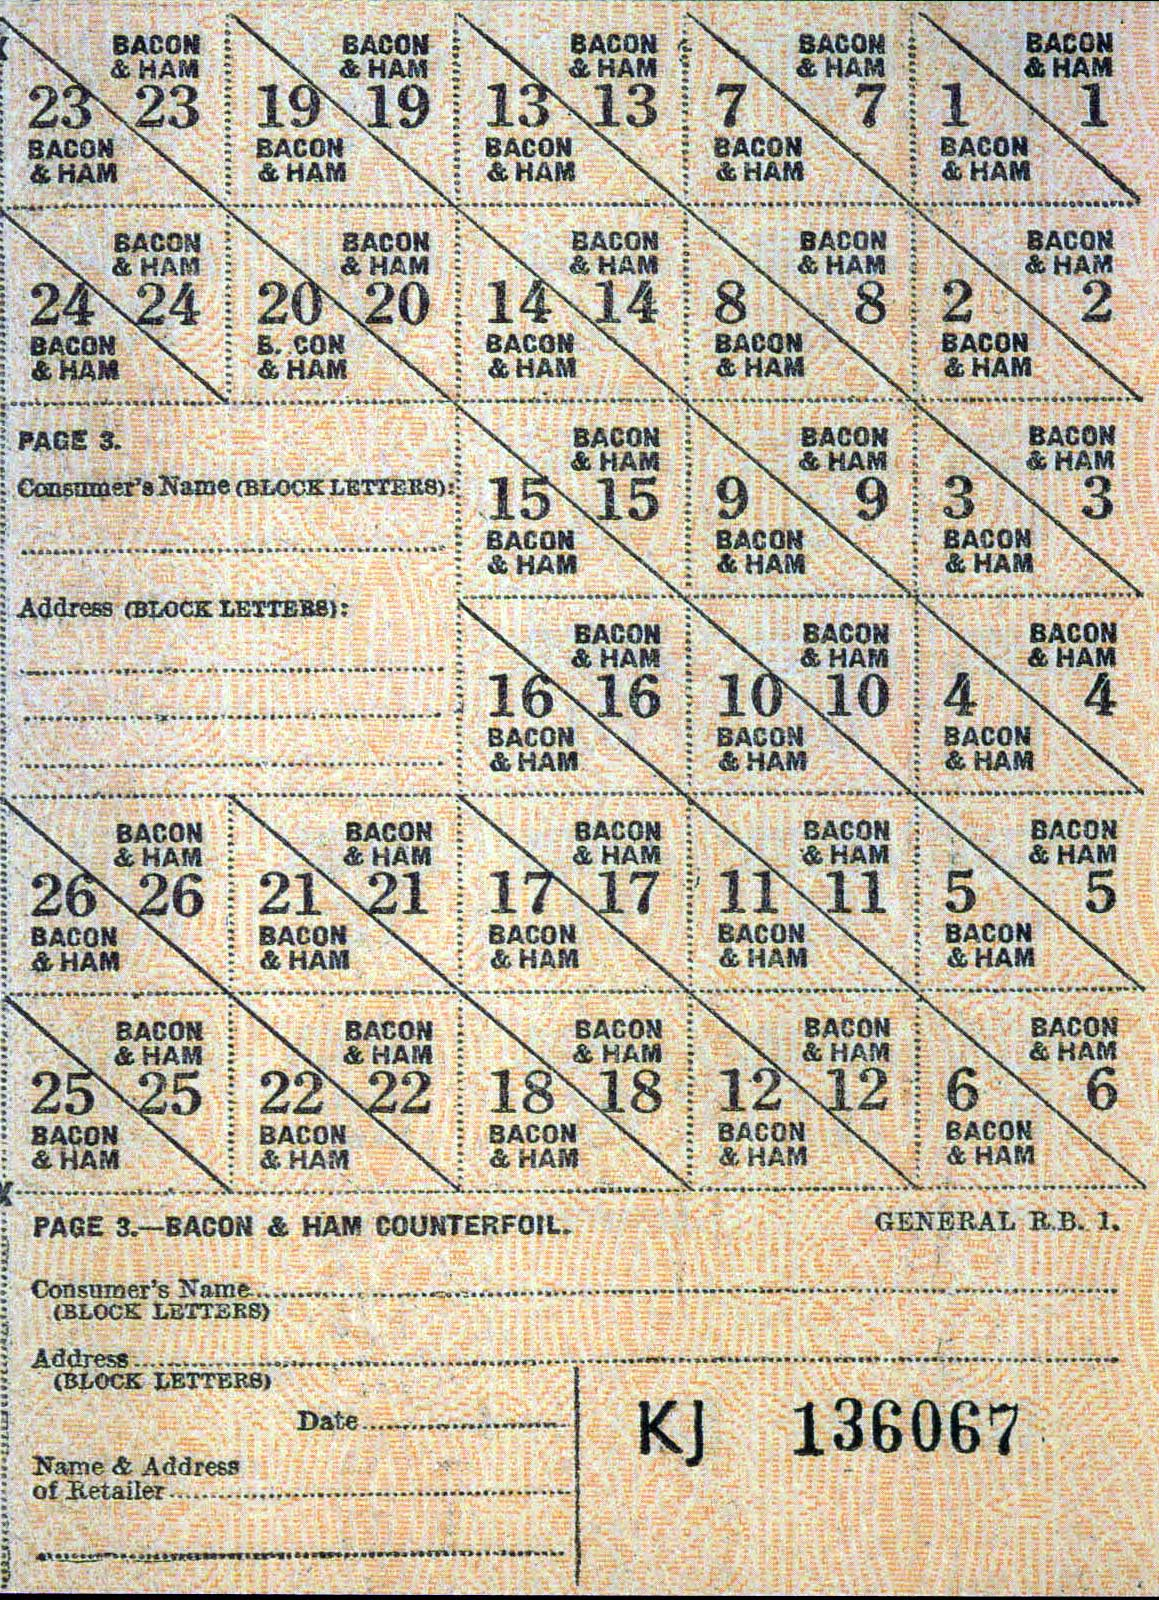 WW2 British ration coupons for bacon and ham